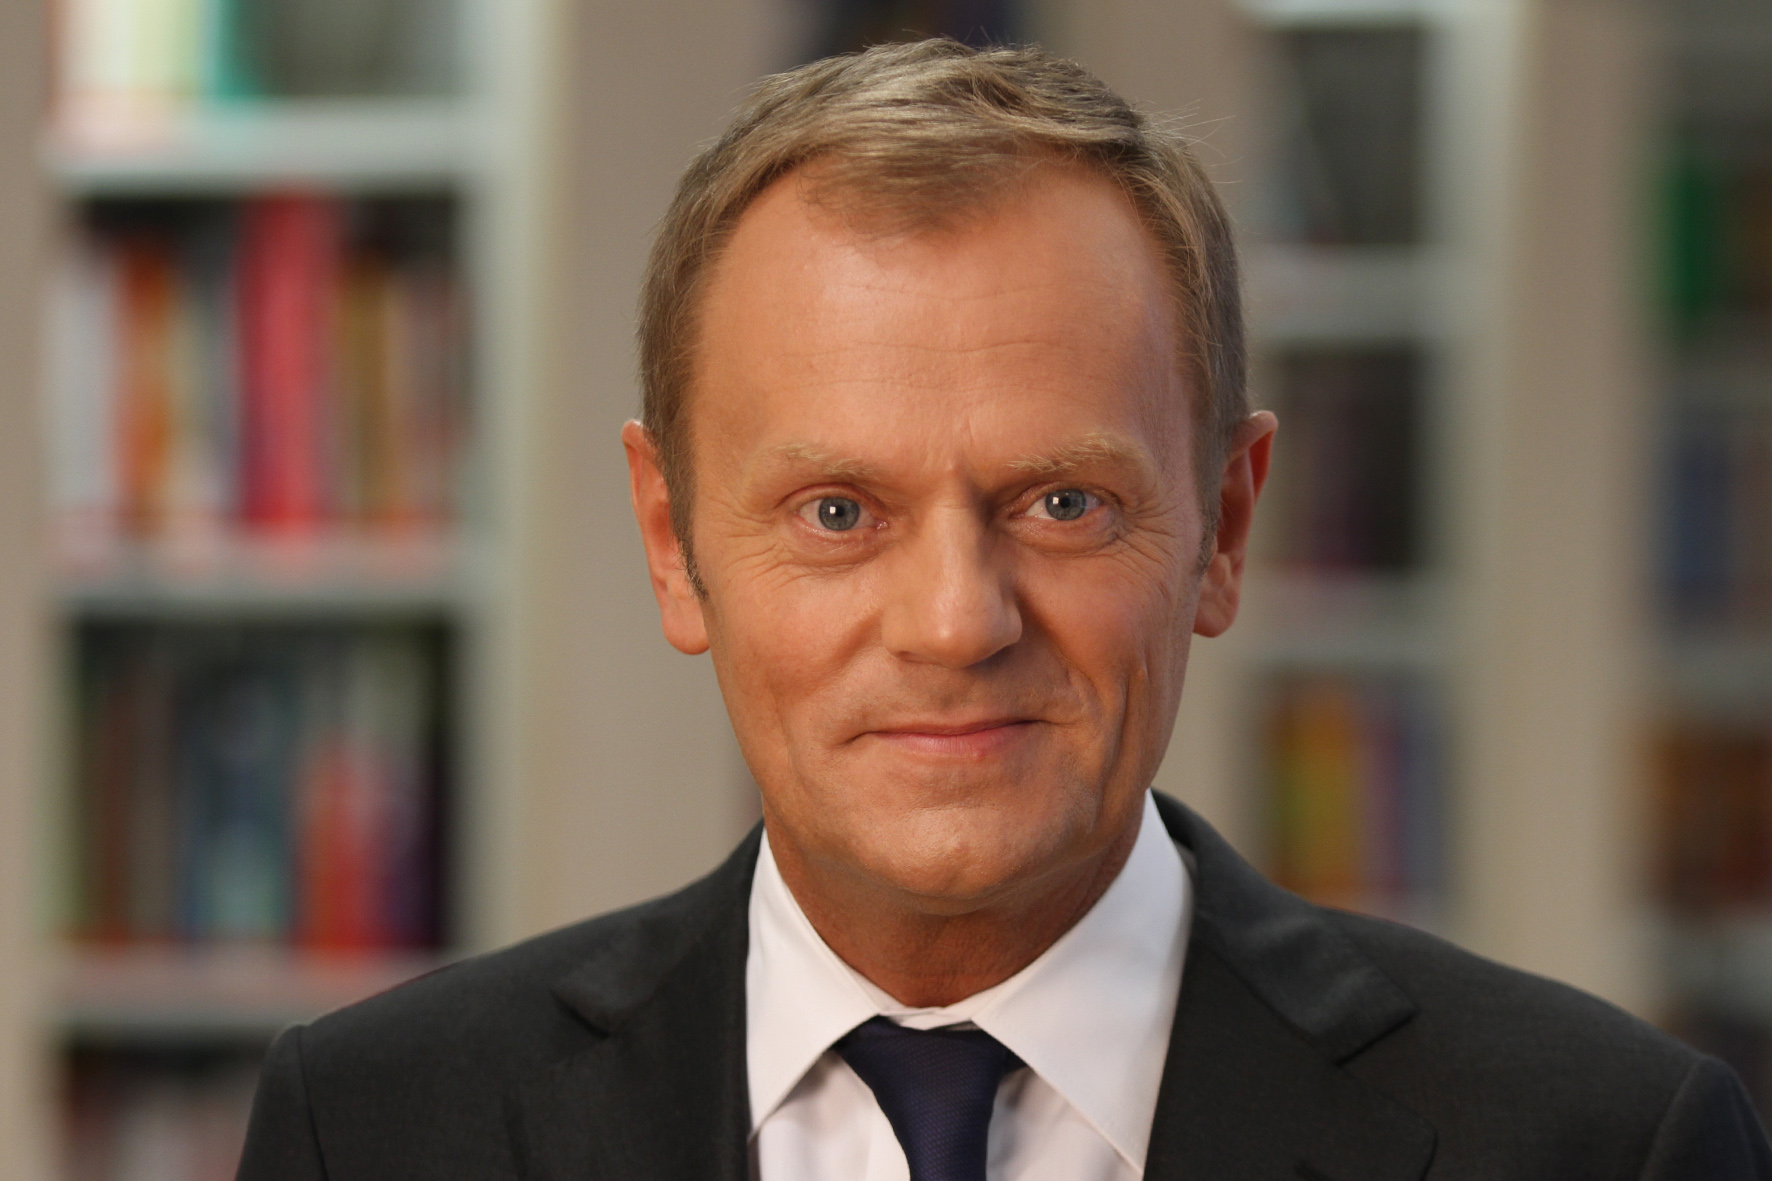 Tusk: The discussion on the Dublin treaty directly concerns Greece